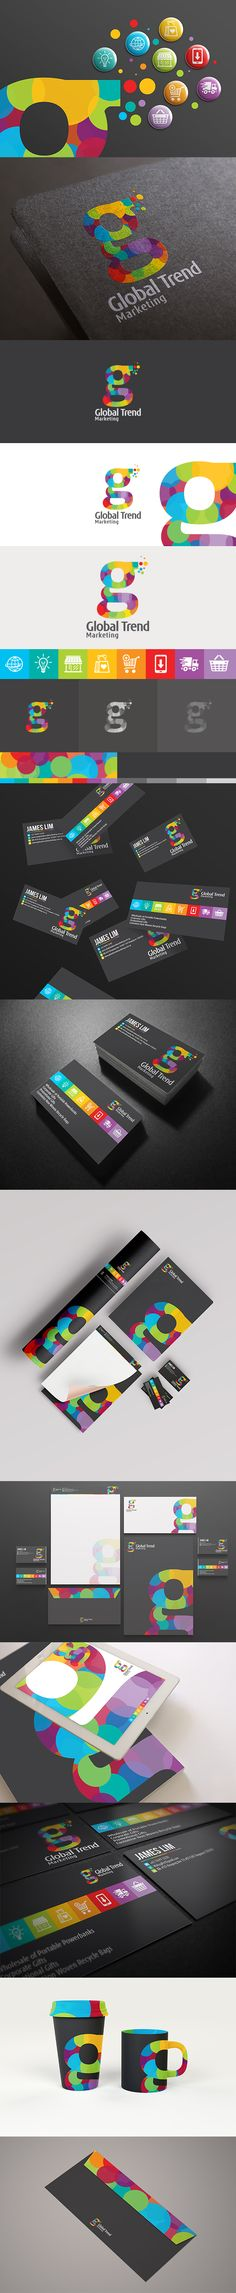 A #branding project for Global Trend marketing. #Global Trend is an# online #technology #shopping store that brings in the best and latest #tech stuffs in town.  A #colorful concept theme.